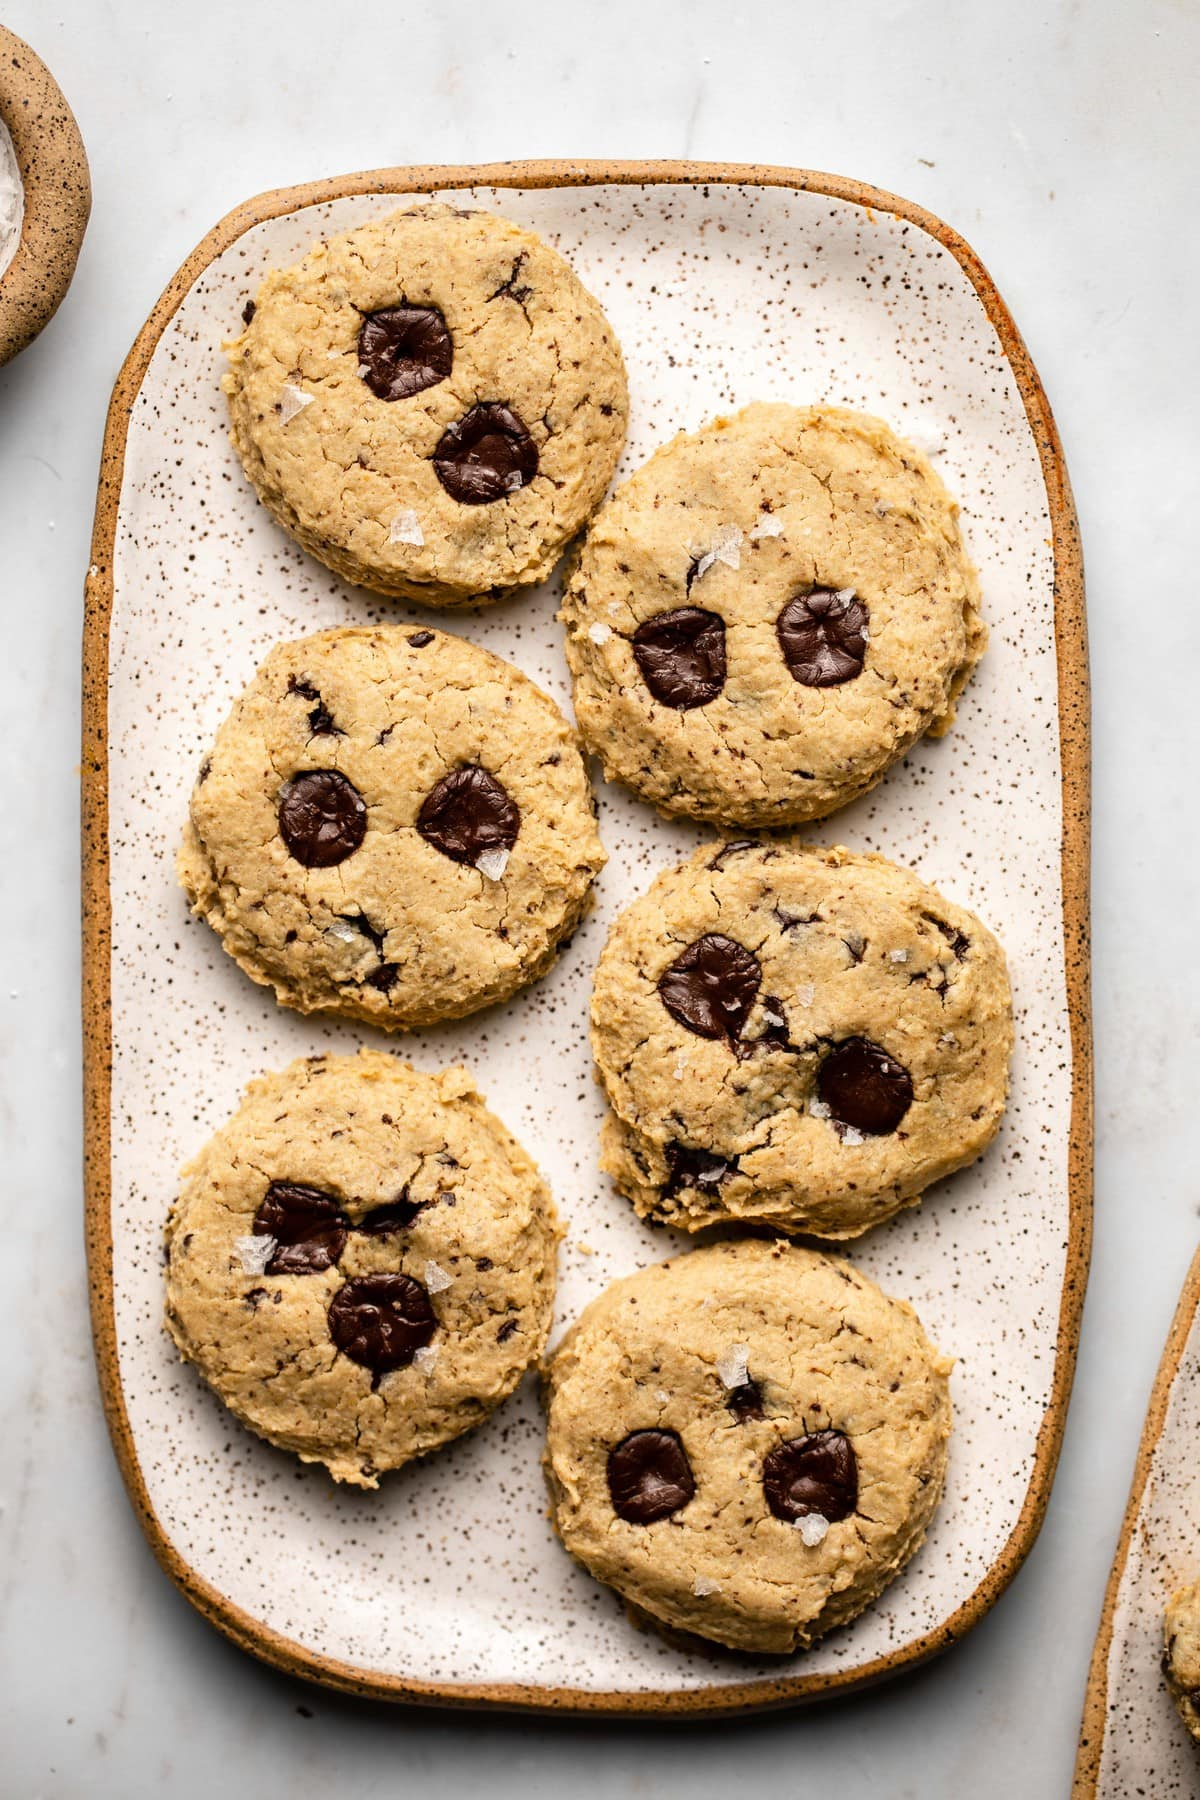 cooked chickpea chocolate chip cookies on white speckled tray on marble background